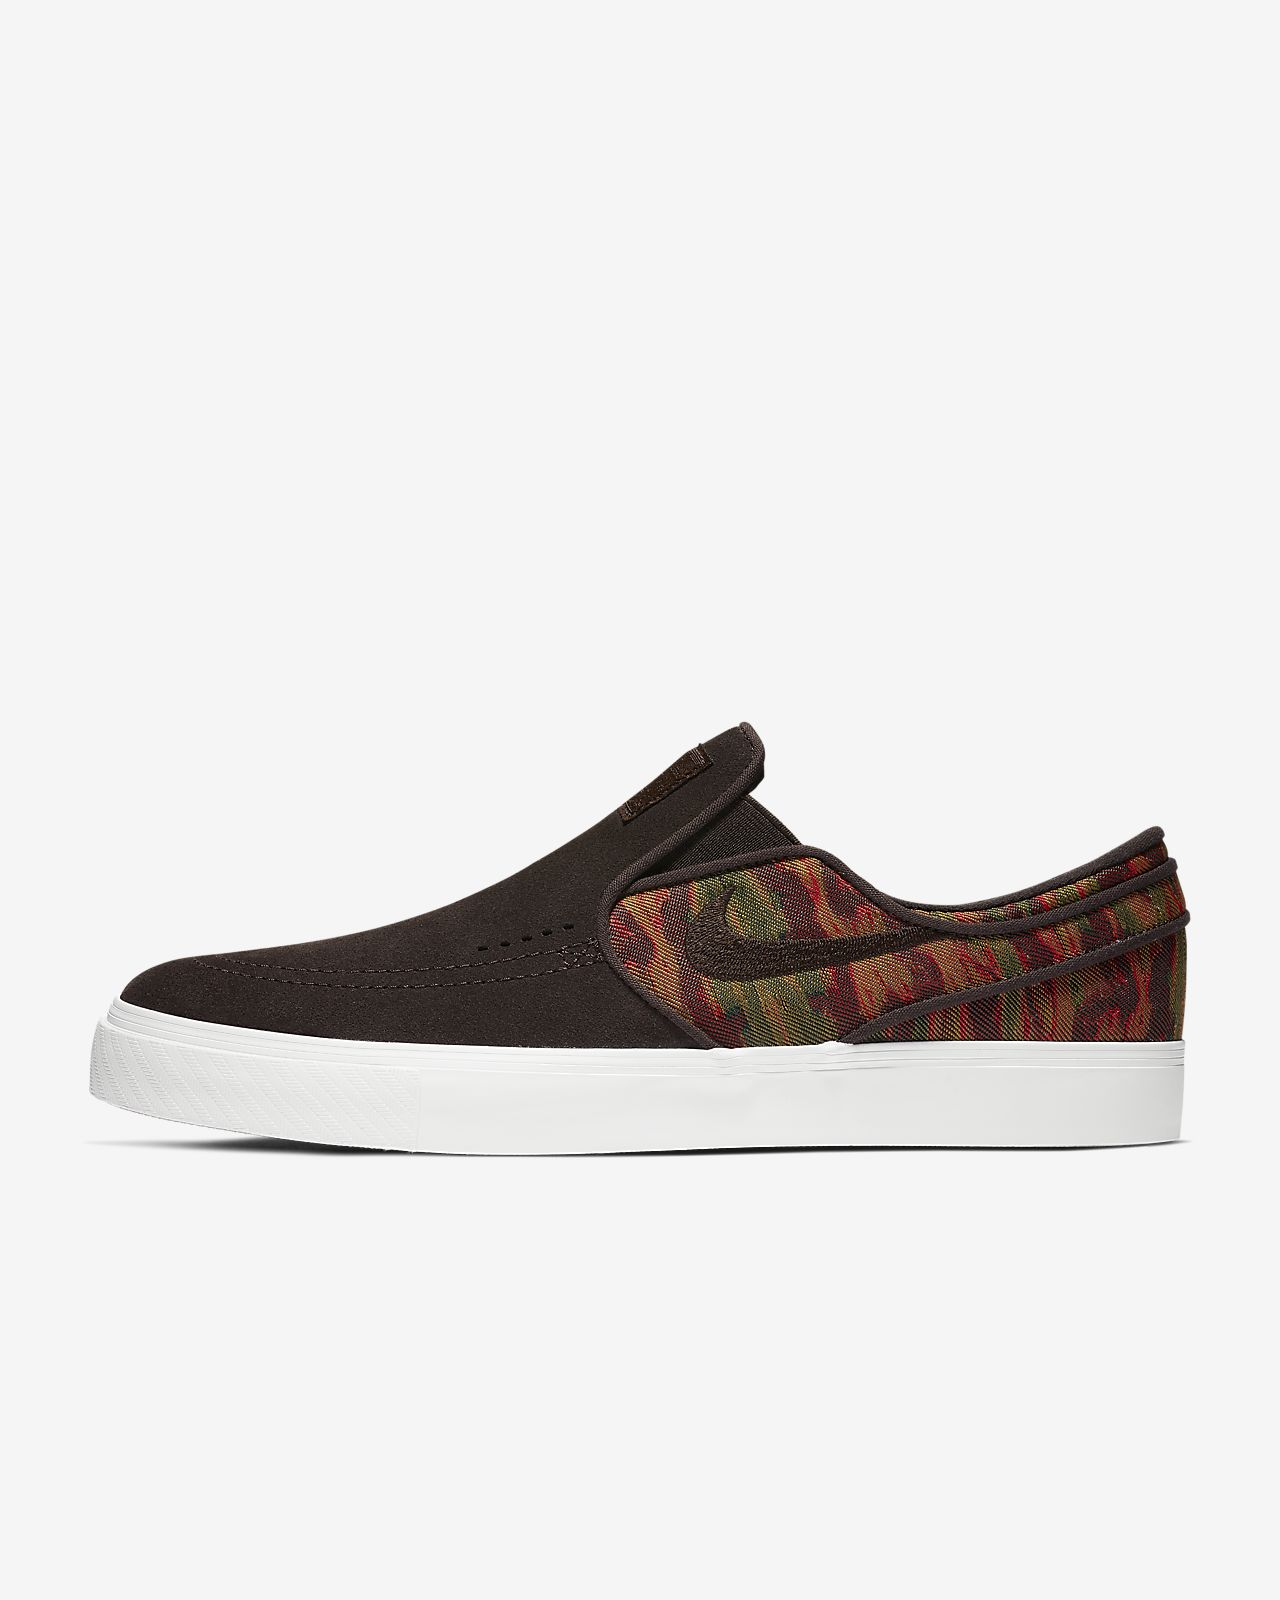 563bf46f1323 Nike SB Zoom Stefan Janoski Slip-On Premium Men s Skateboarding Shoe ...